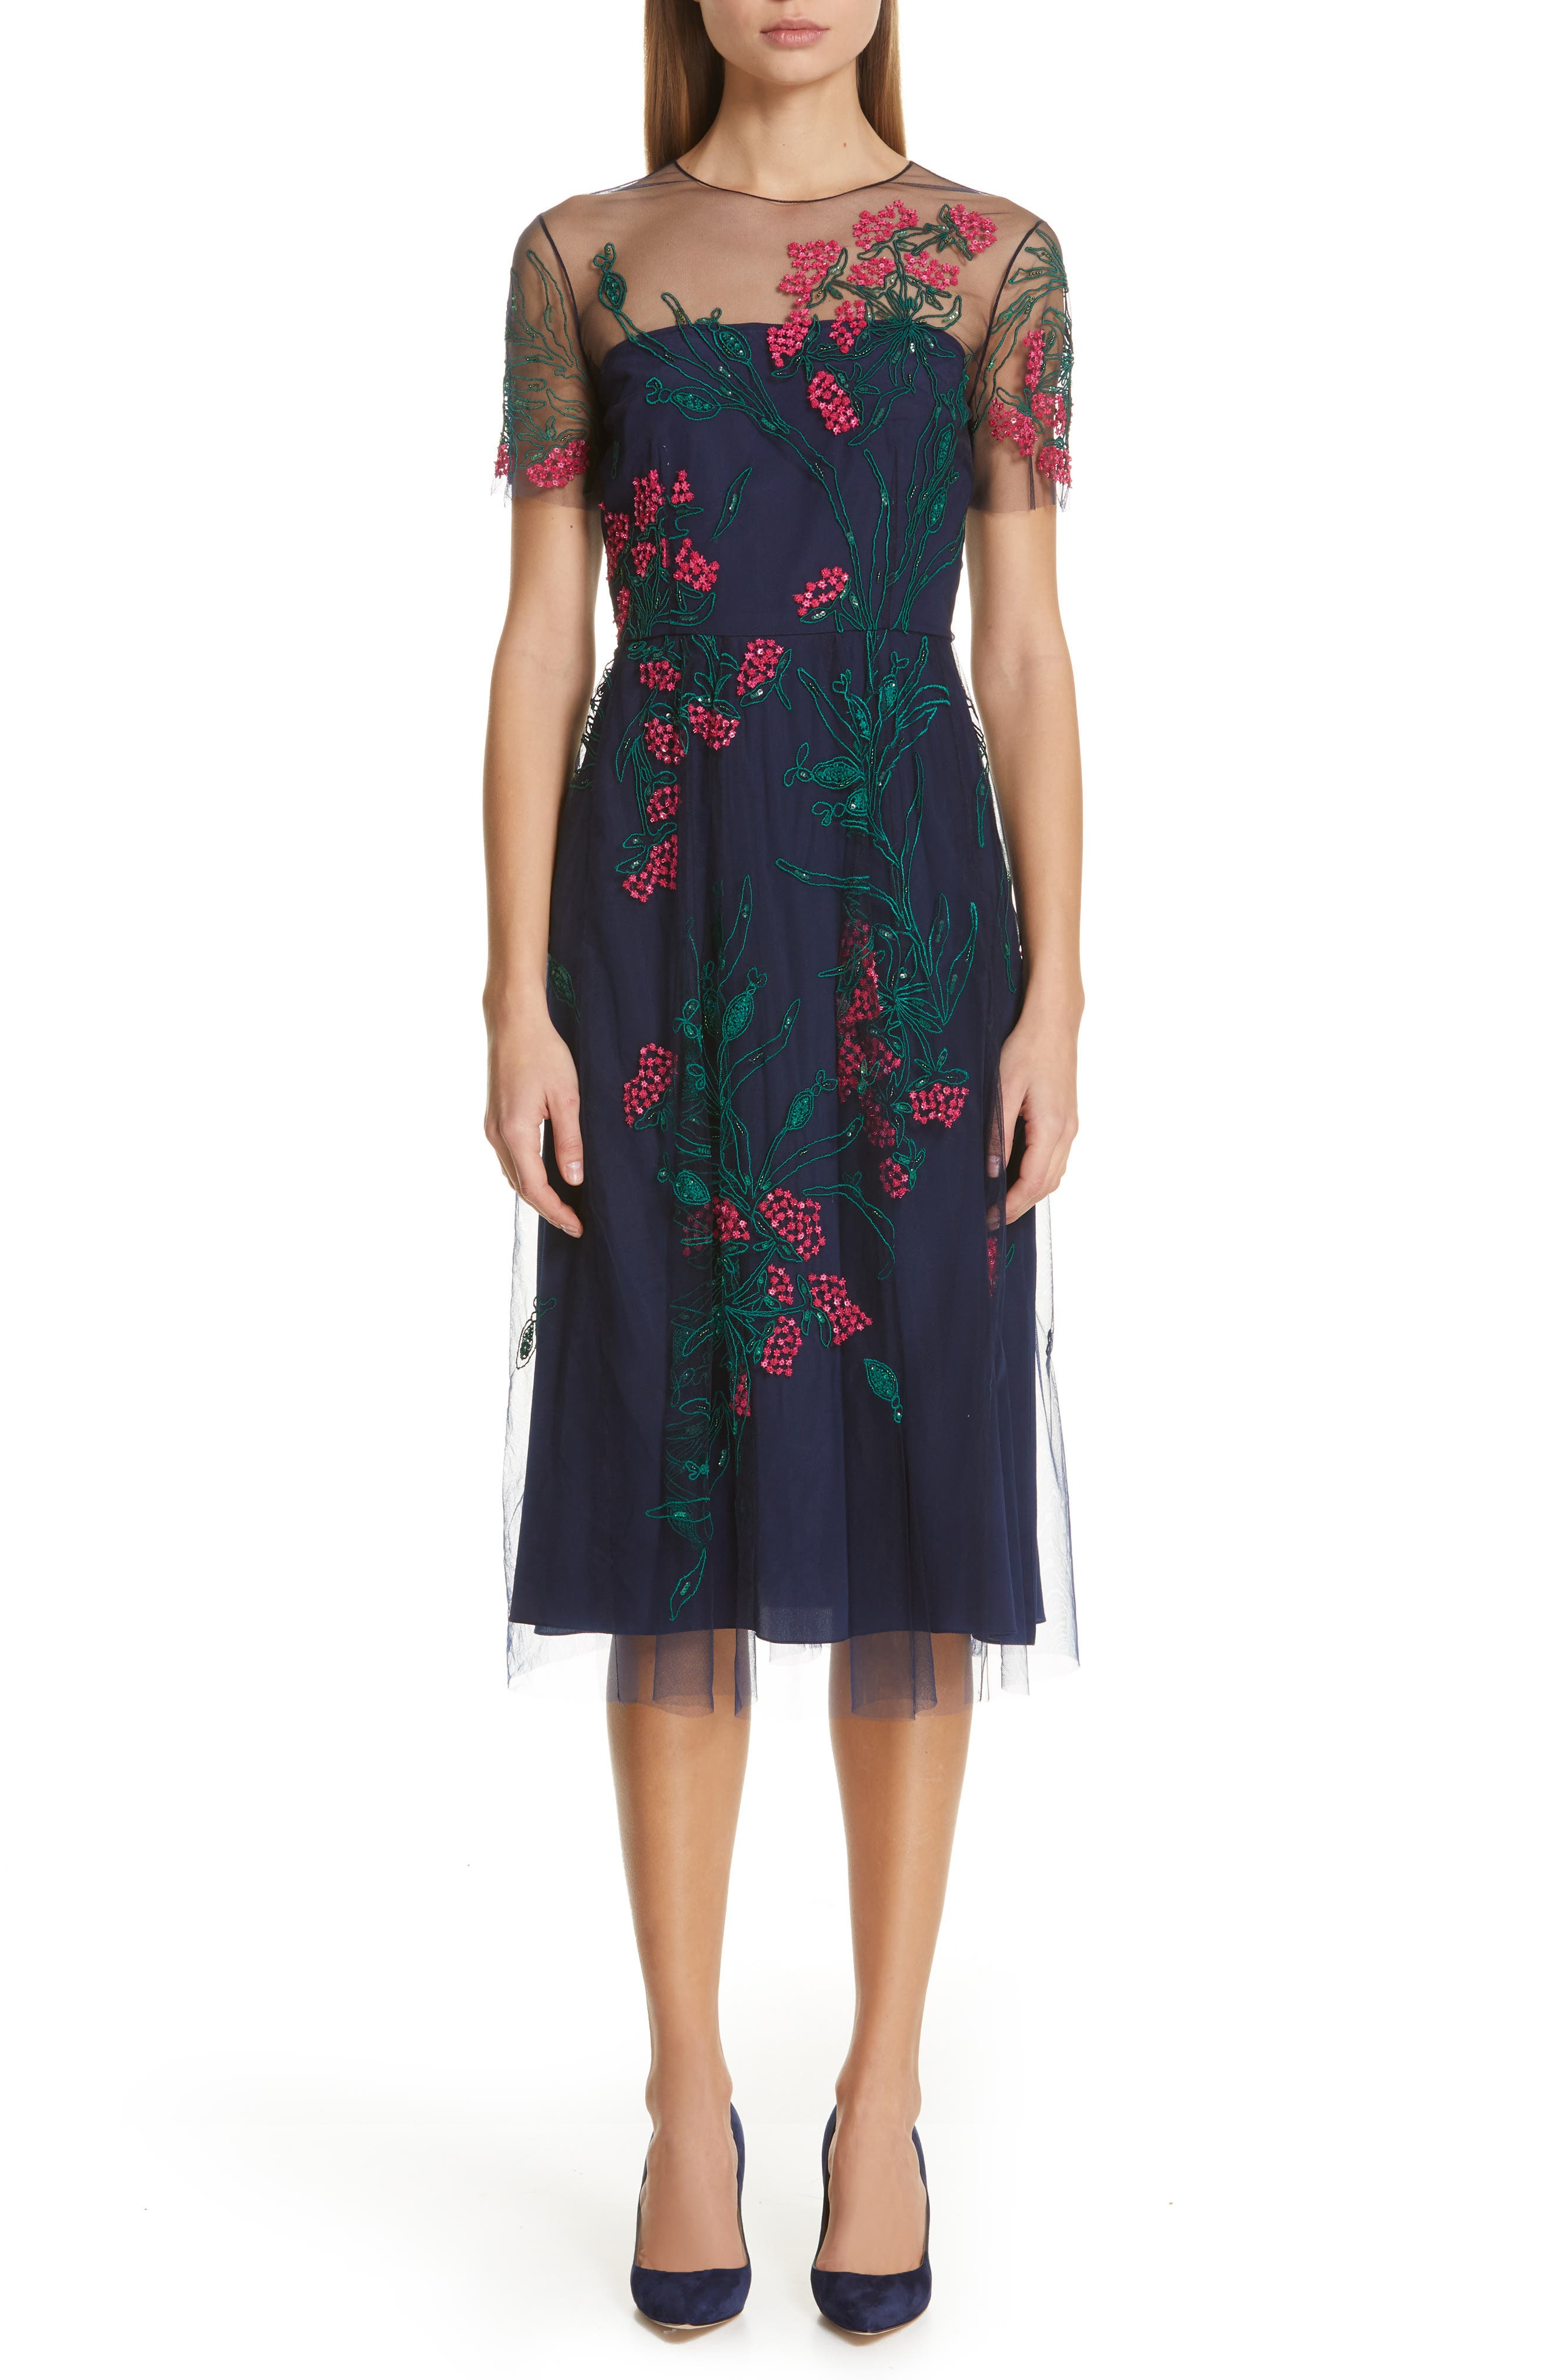 Carolina Herrera Floral Cocktail Dress, Blue